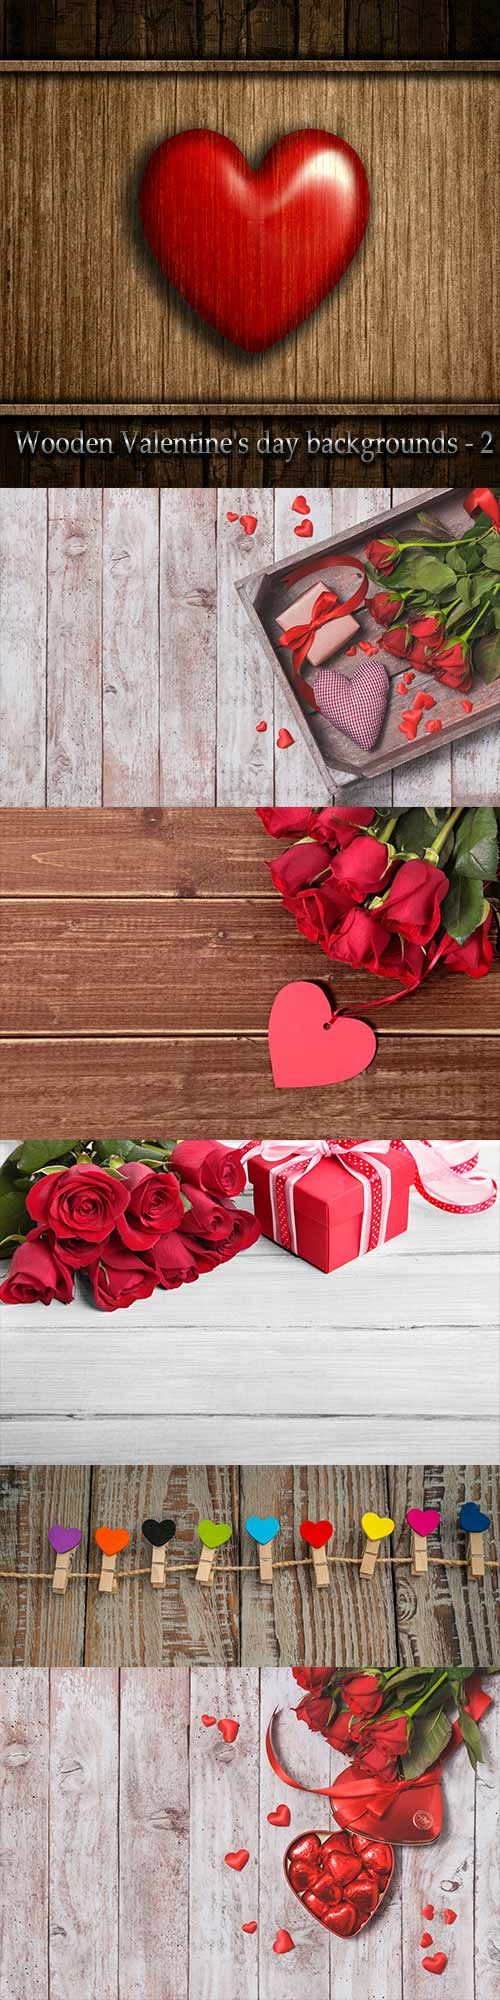 Wooden Valentine's day backgrounds - 2